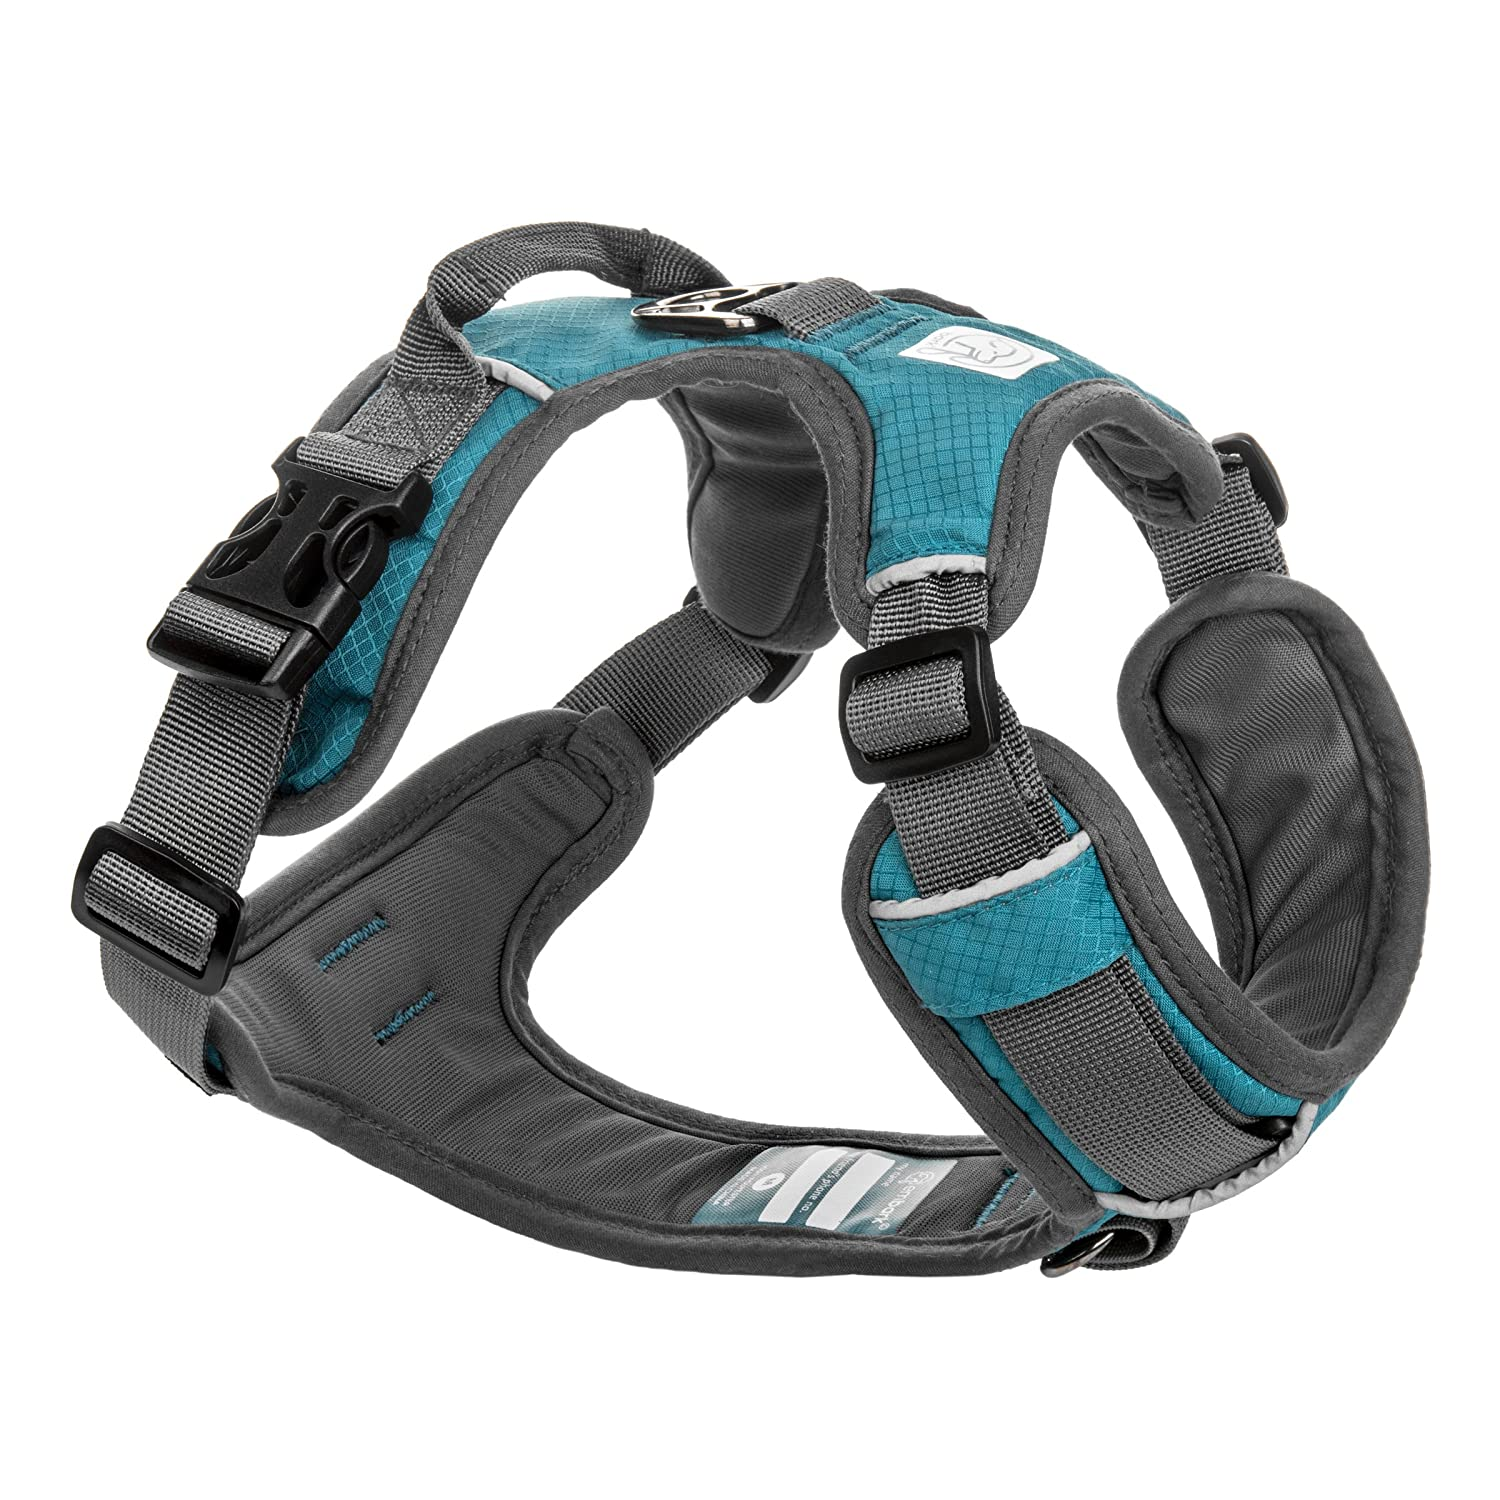 Teal bluee XL Teal bluee XL Embark Adventure Dog Harness, Easy On and Off with Front and Back Leash Attachments & Control Handle No Pull Training, Size Adjustable and Non Choke (Extra Large bluee)